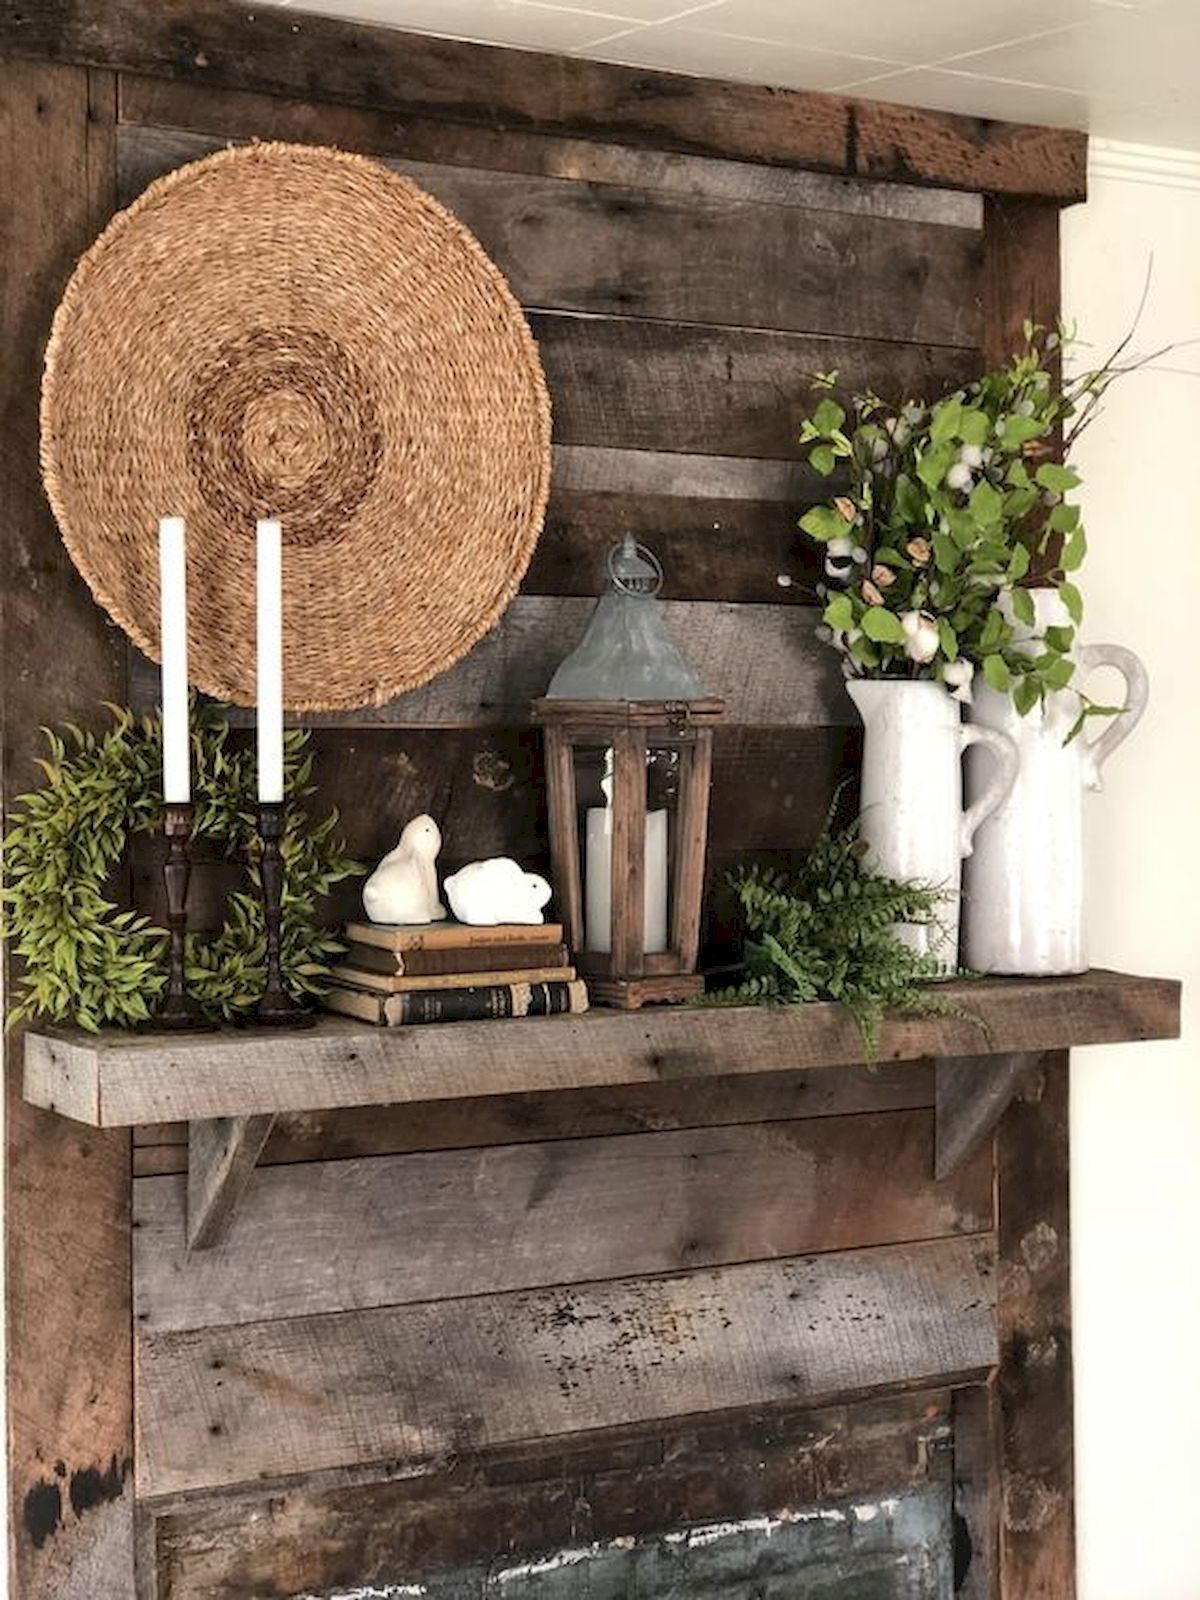 46 farmhouse spring decor ideas with images fireplace